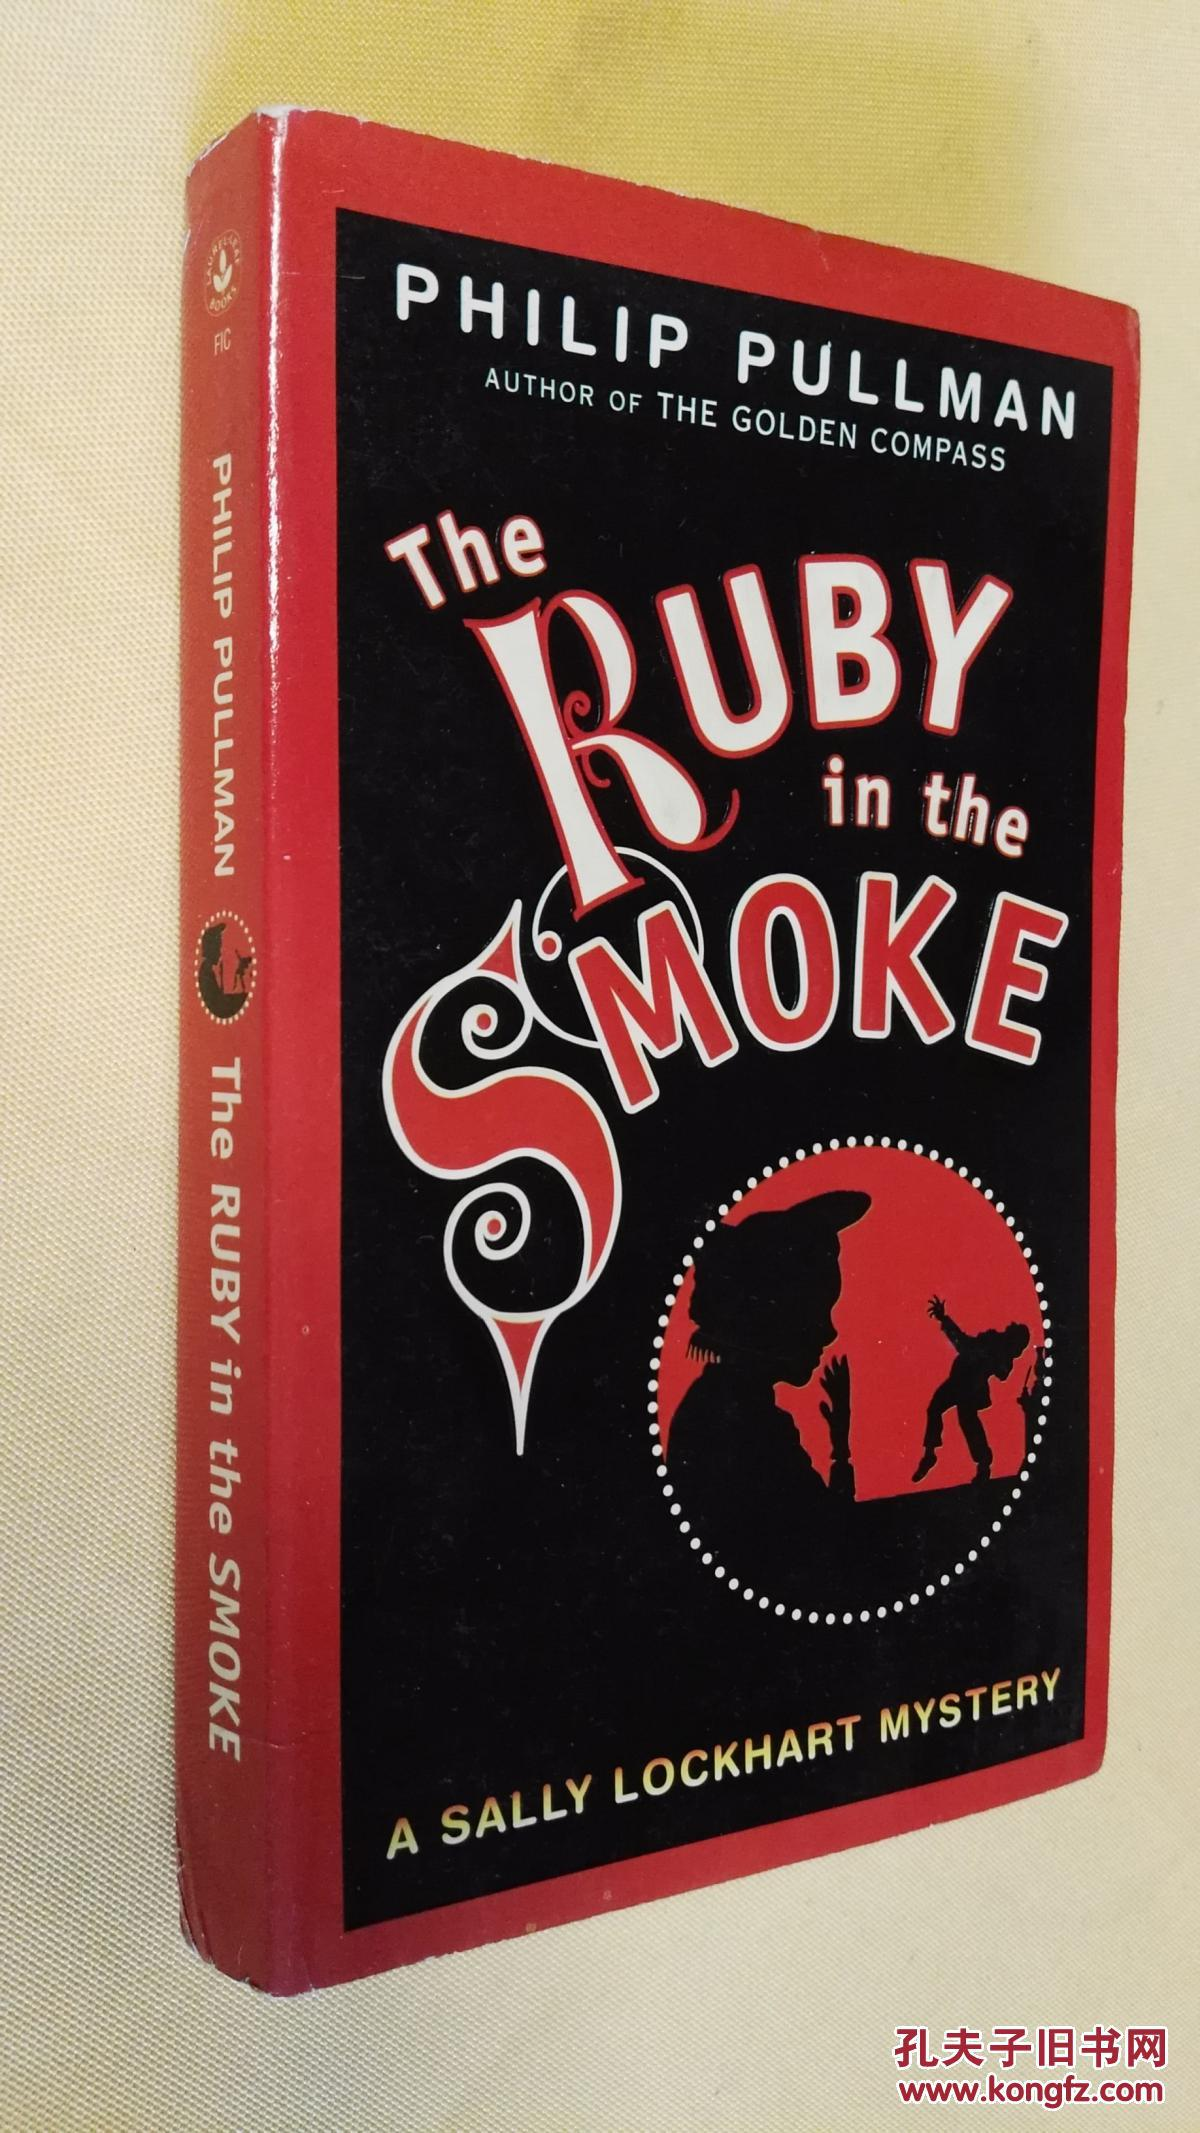 英文原版 The Ruby in the Smoke: A Sally Lockhart Mystery by PHILIP PULLMAN